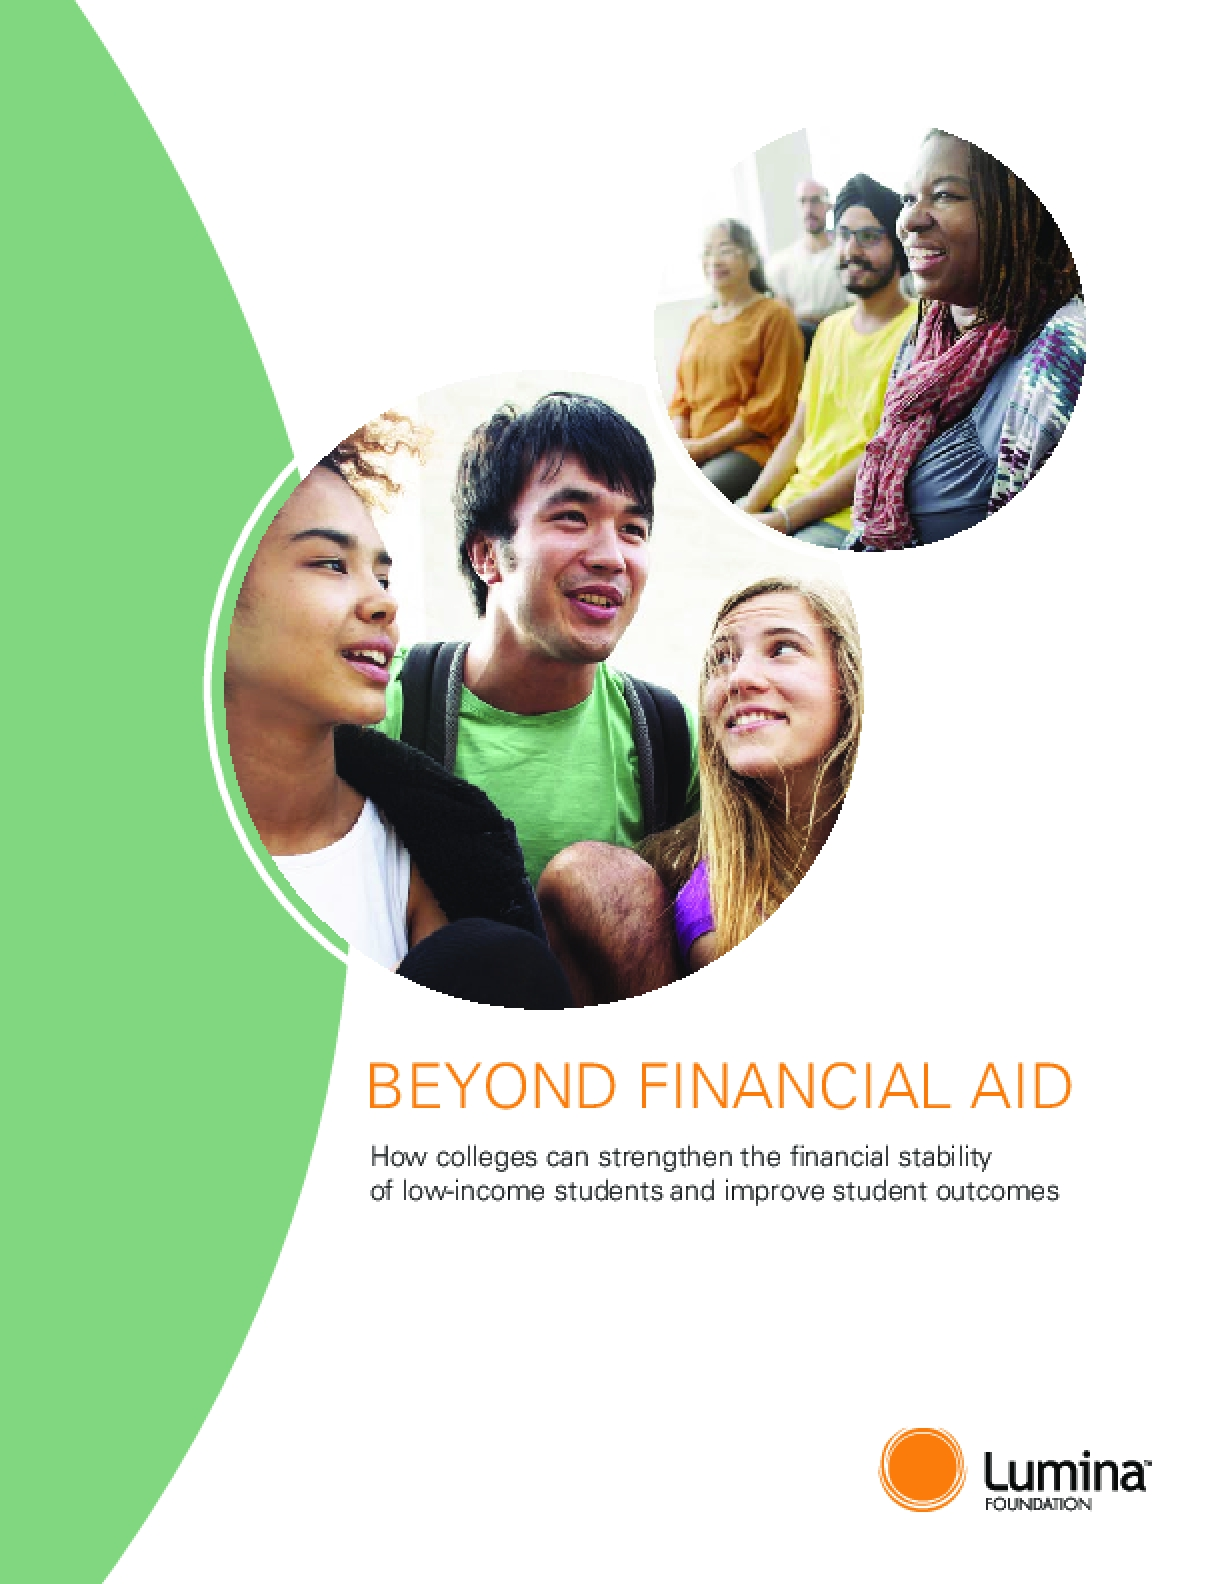 Beyond Financial Aid: How Colleges Can Strengthen the Financial Stability of Low-income Students and Improve Student Outcomes - 2018